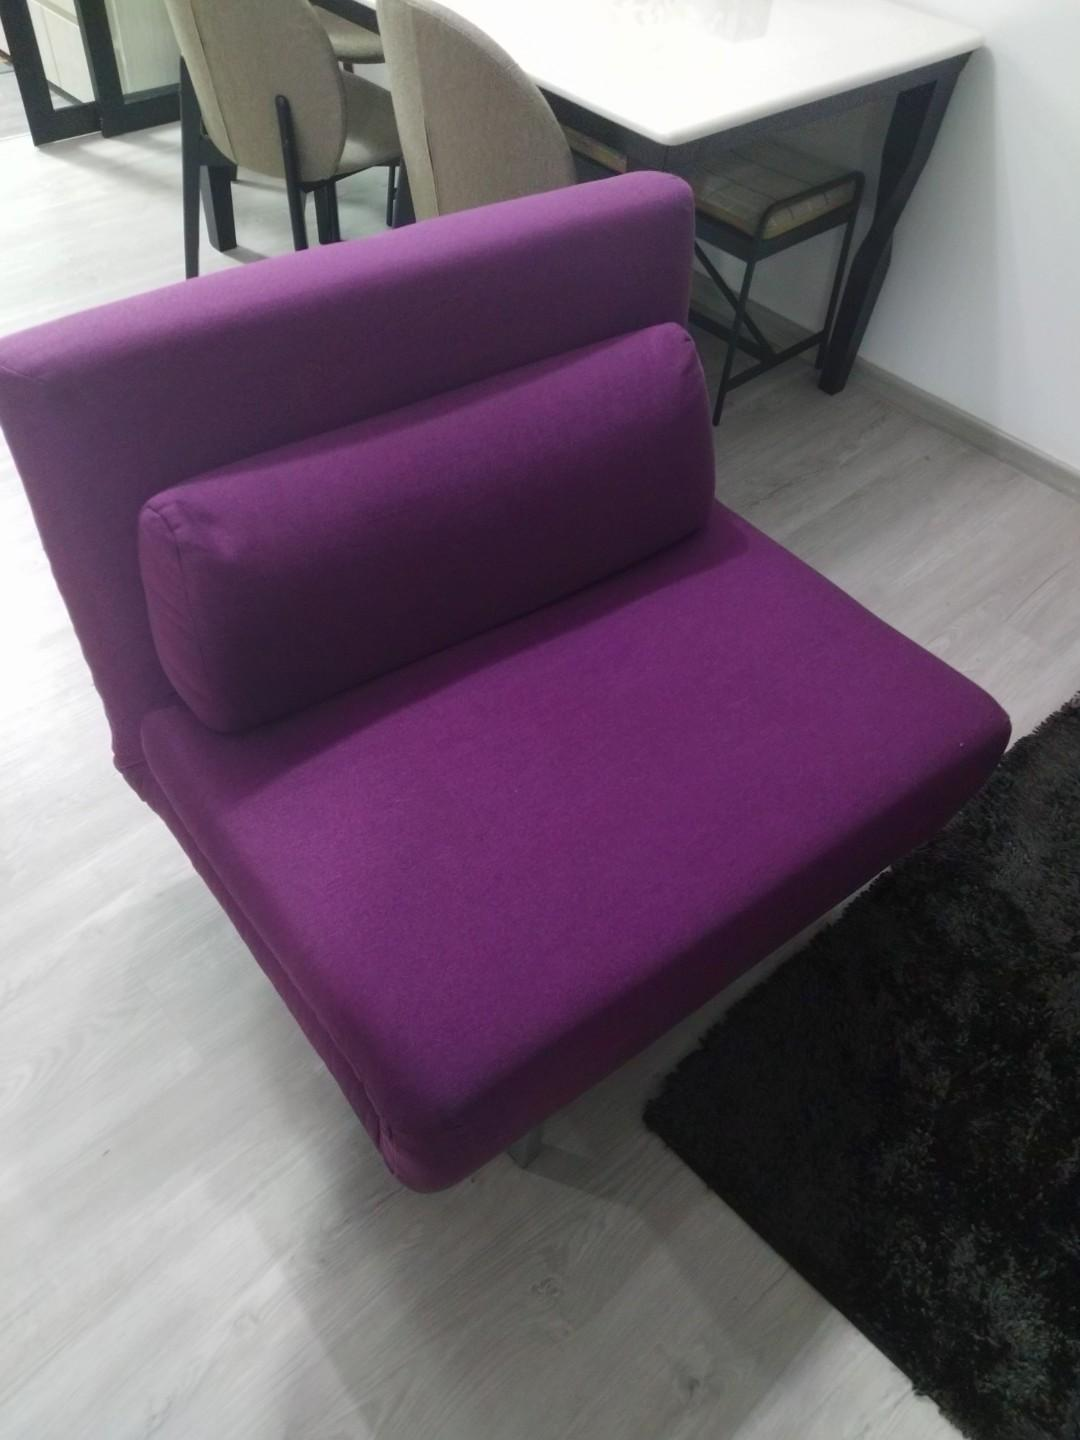 Picture of: Used Single Sofa Bed For Sale Furniture Beds Mattresses On Carousell